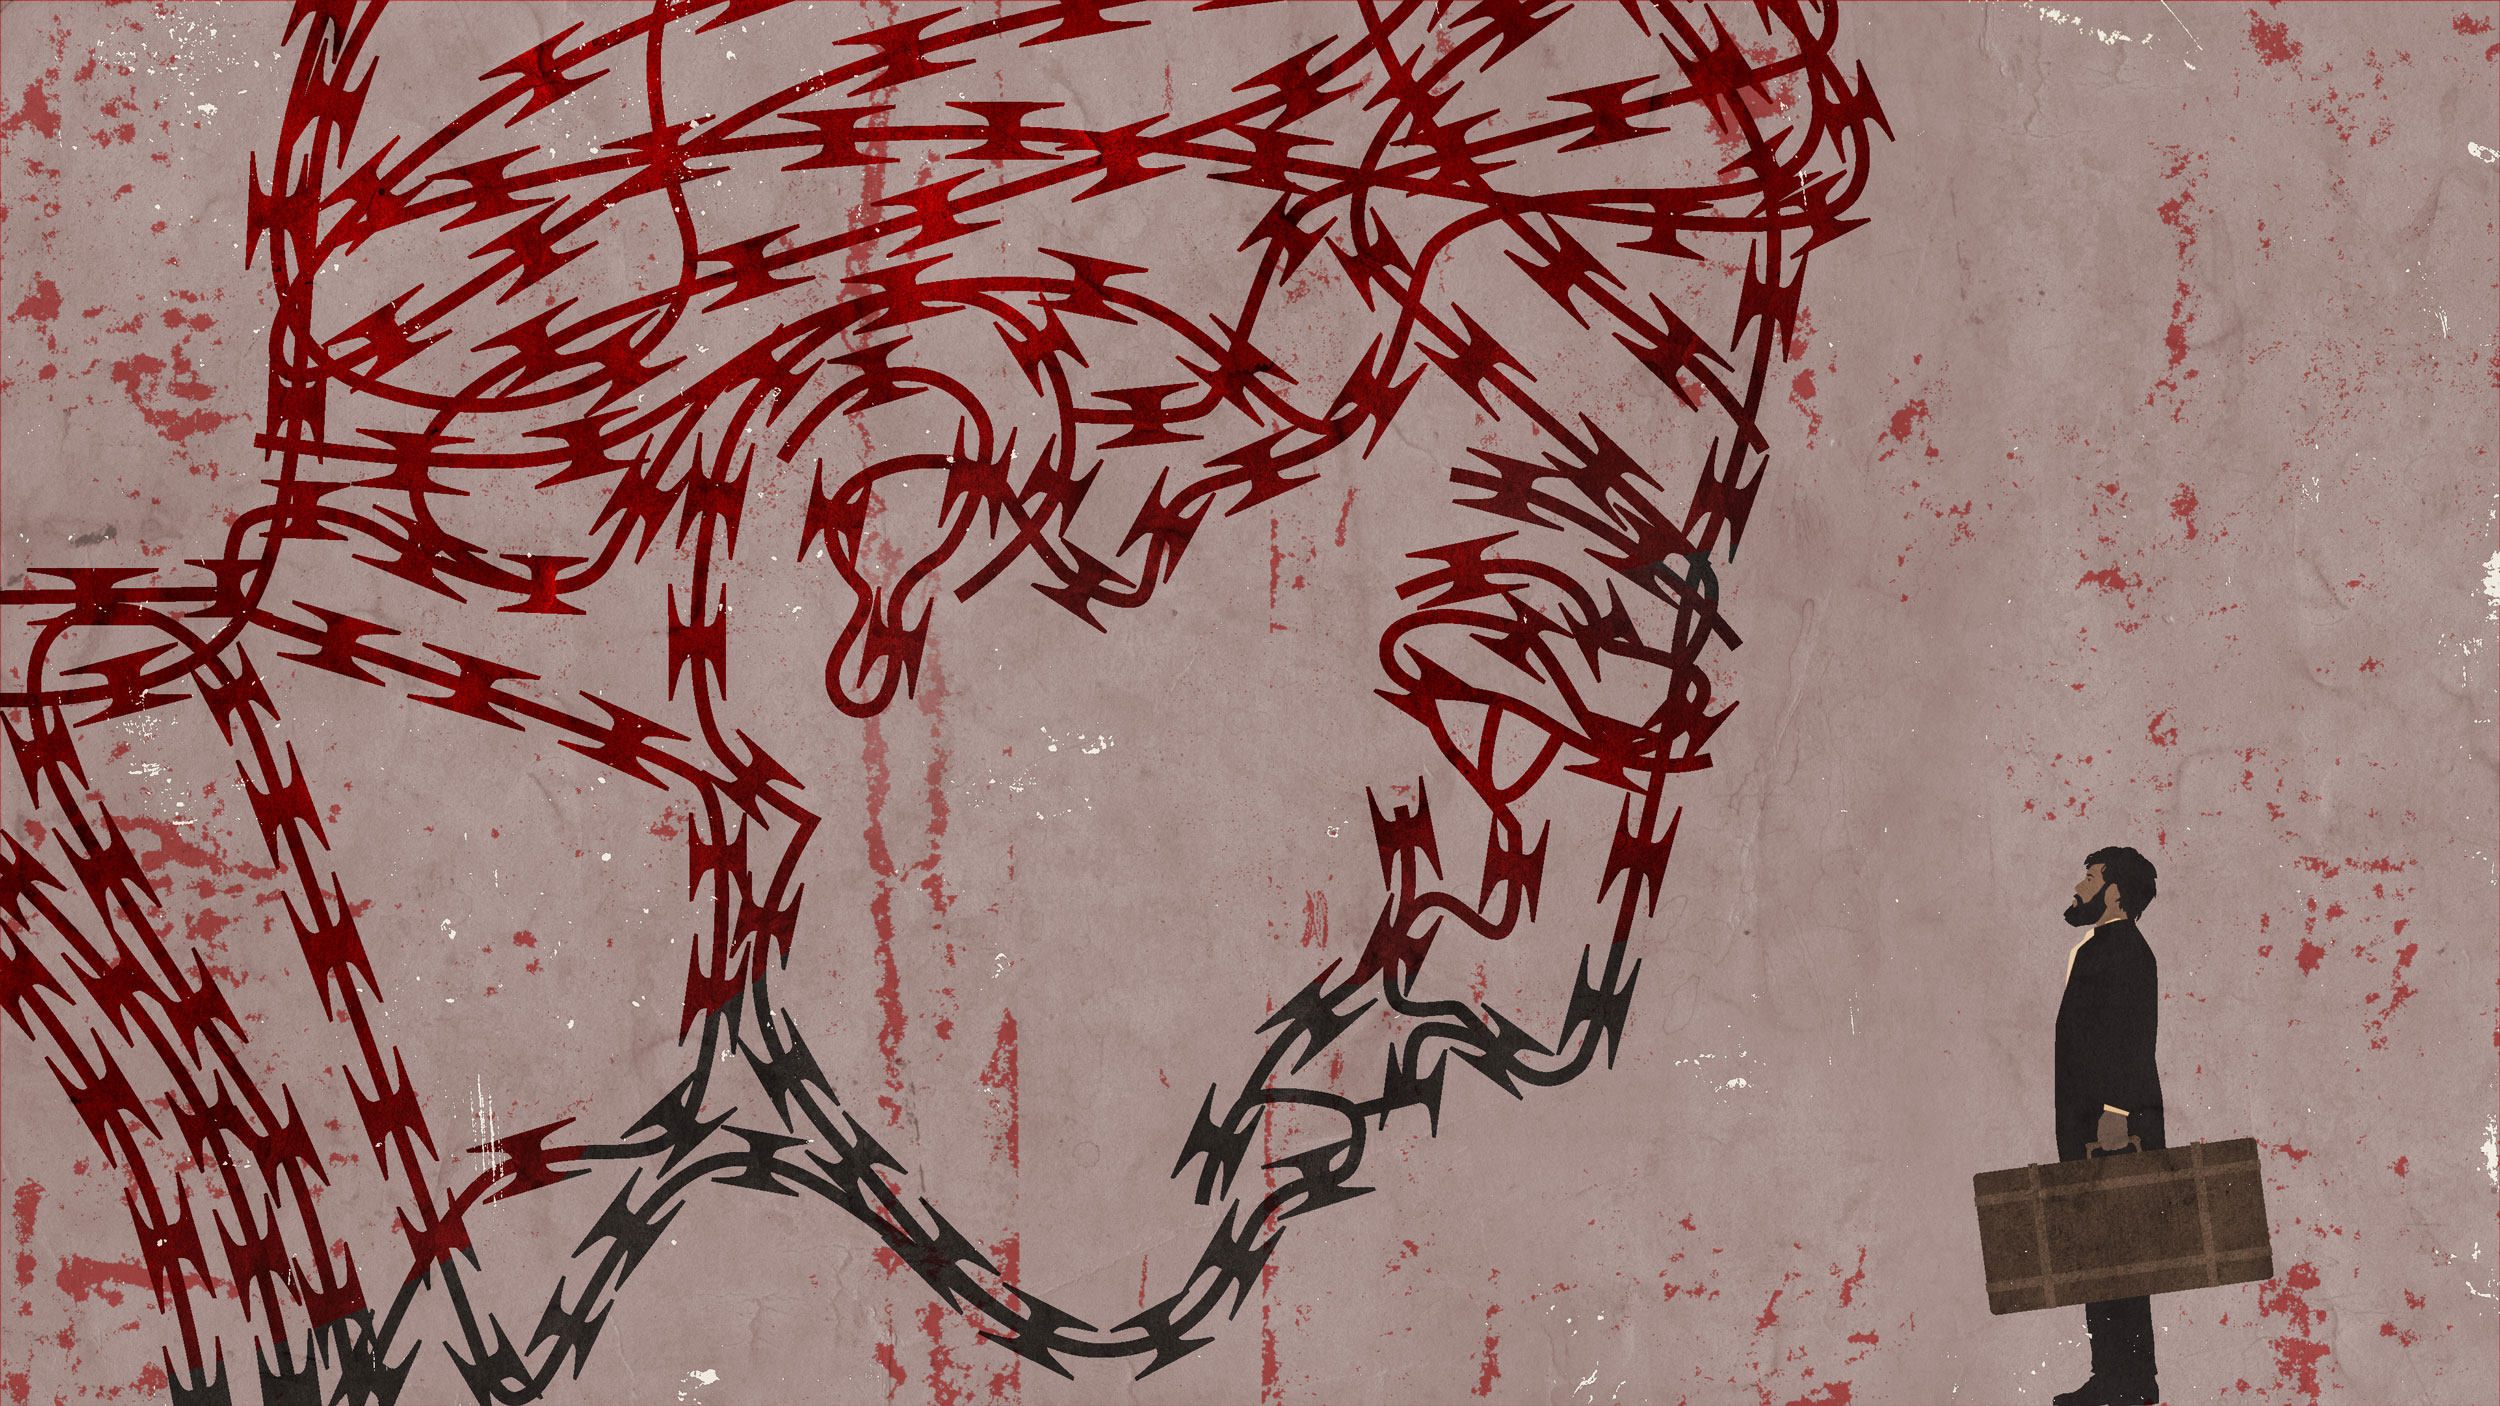 A large face made out of a razor wire blocks a man holding a suitcase in this illustration.